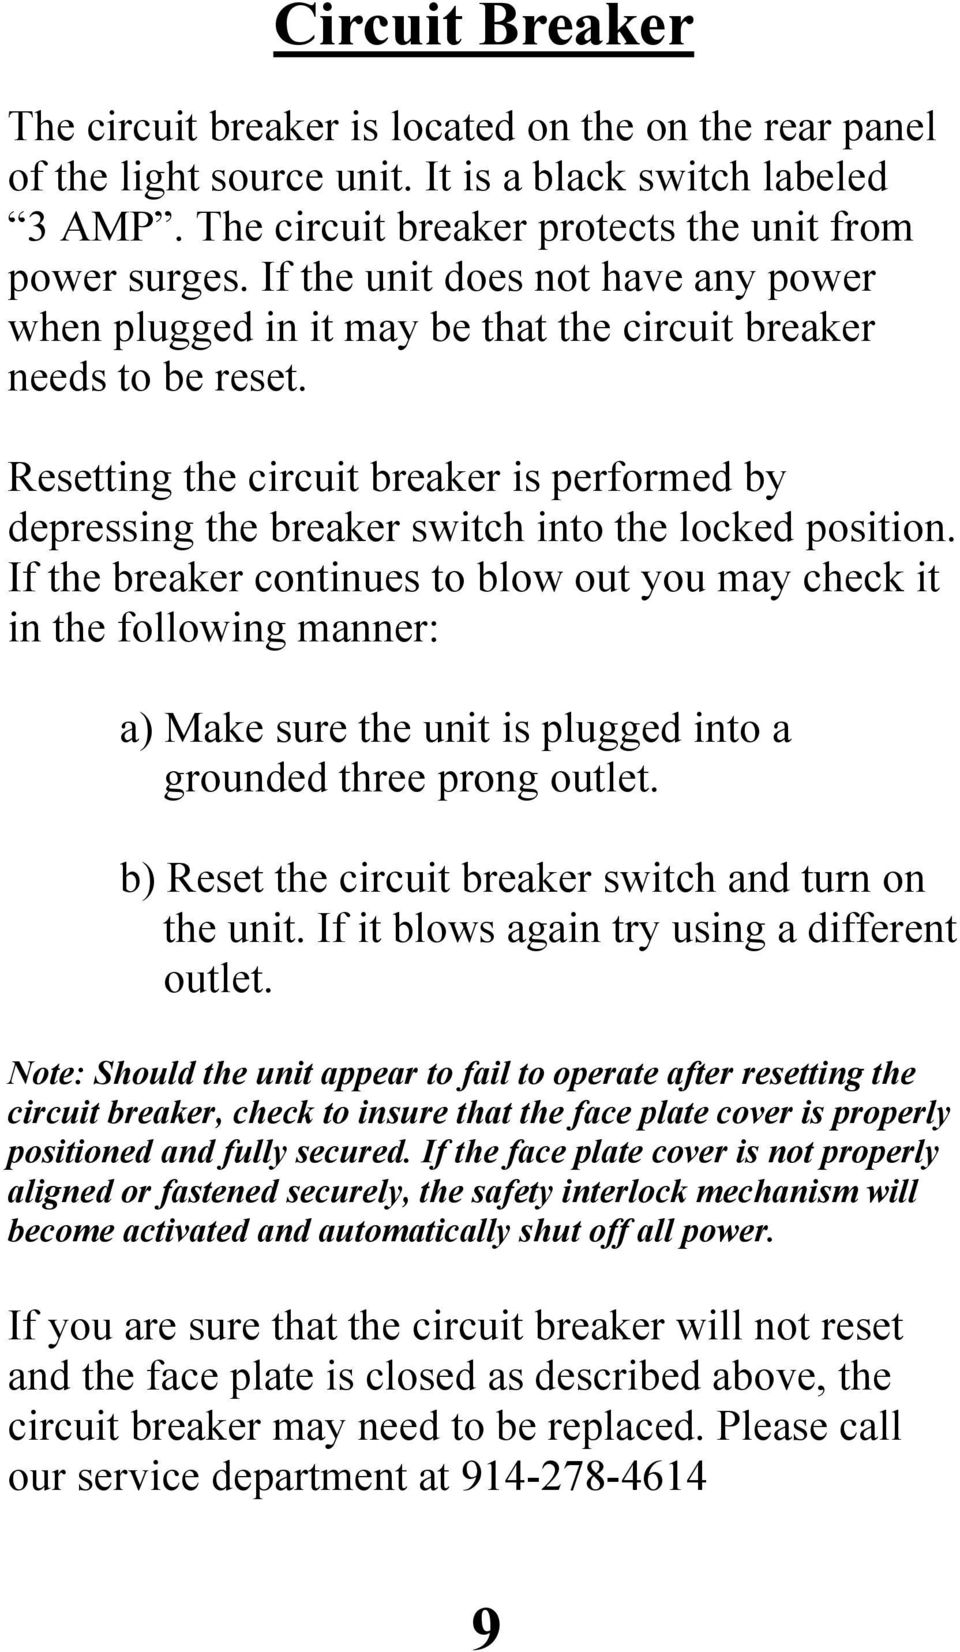 Resetting the circuit breaker is performed by depressing the breaker switch into the locked position.